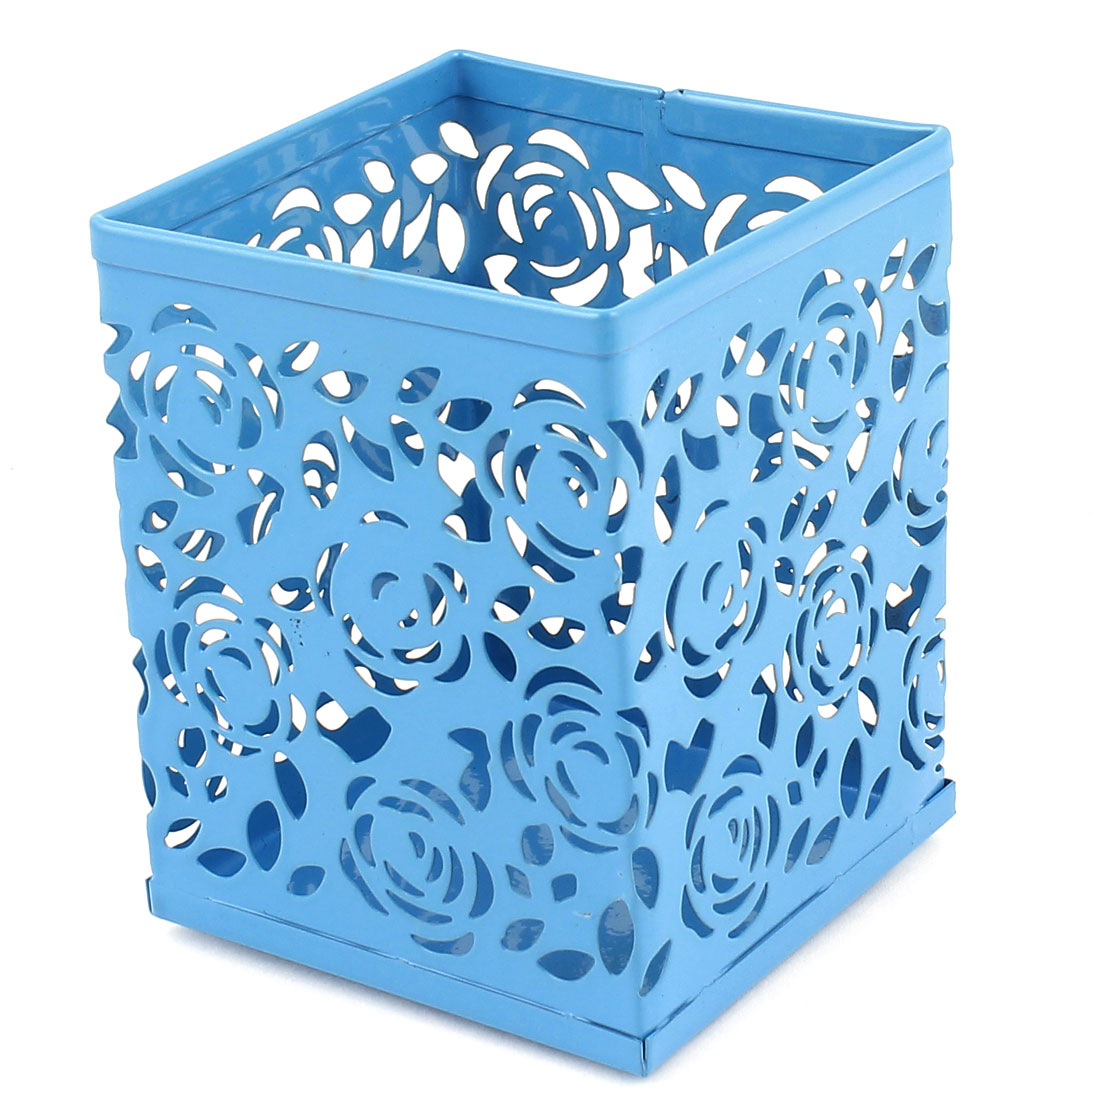 Metal Hollow Out Flowers Design Pencil Pen Holder Container Blue